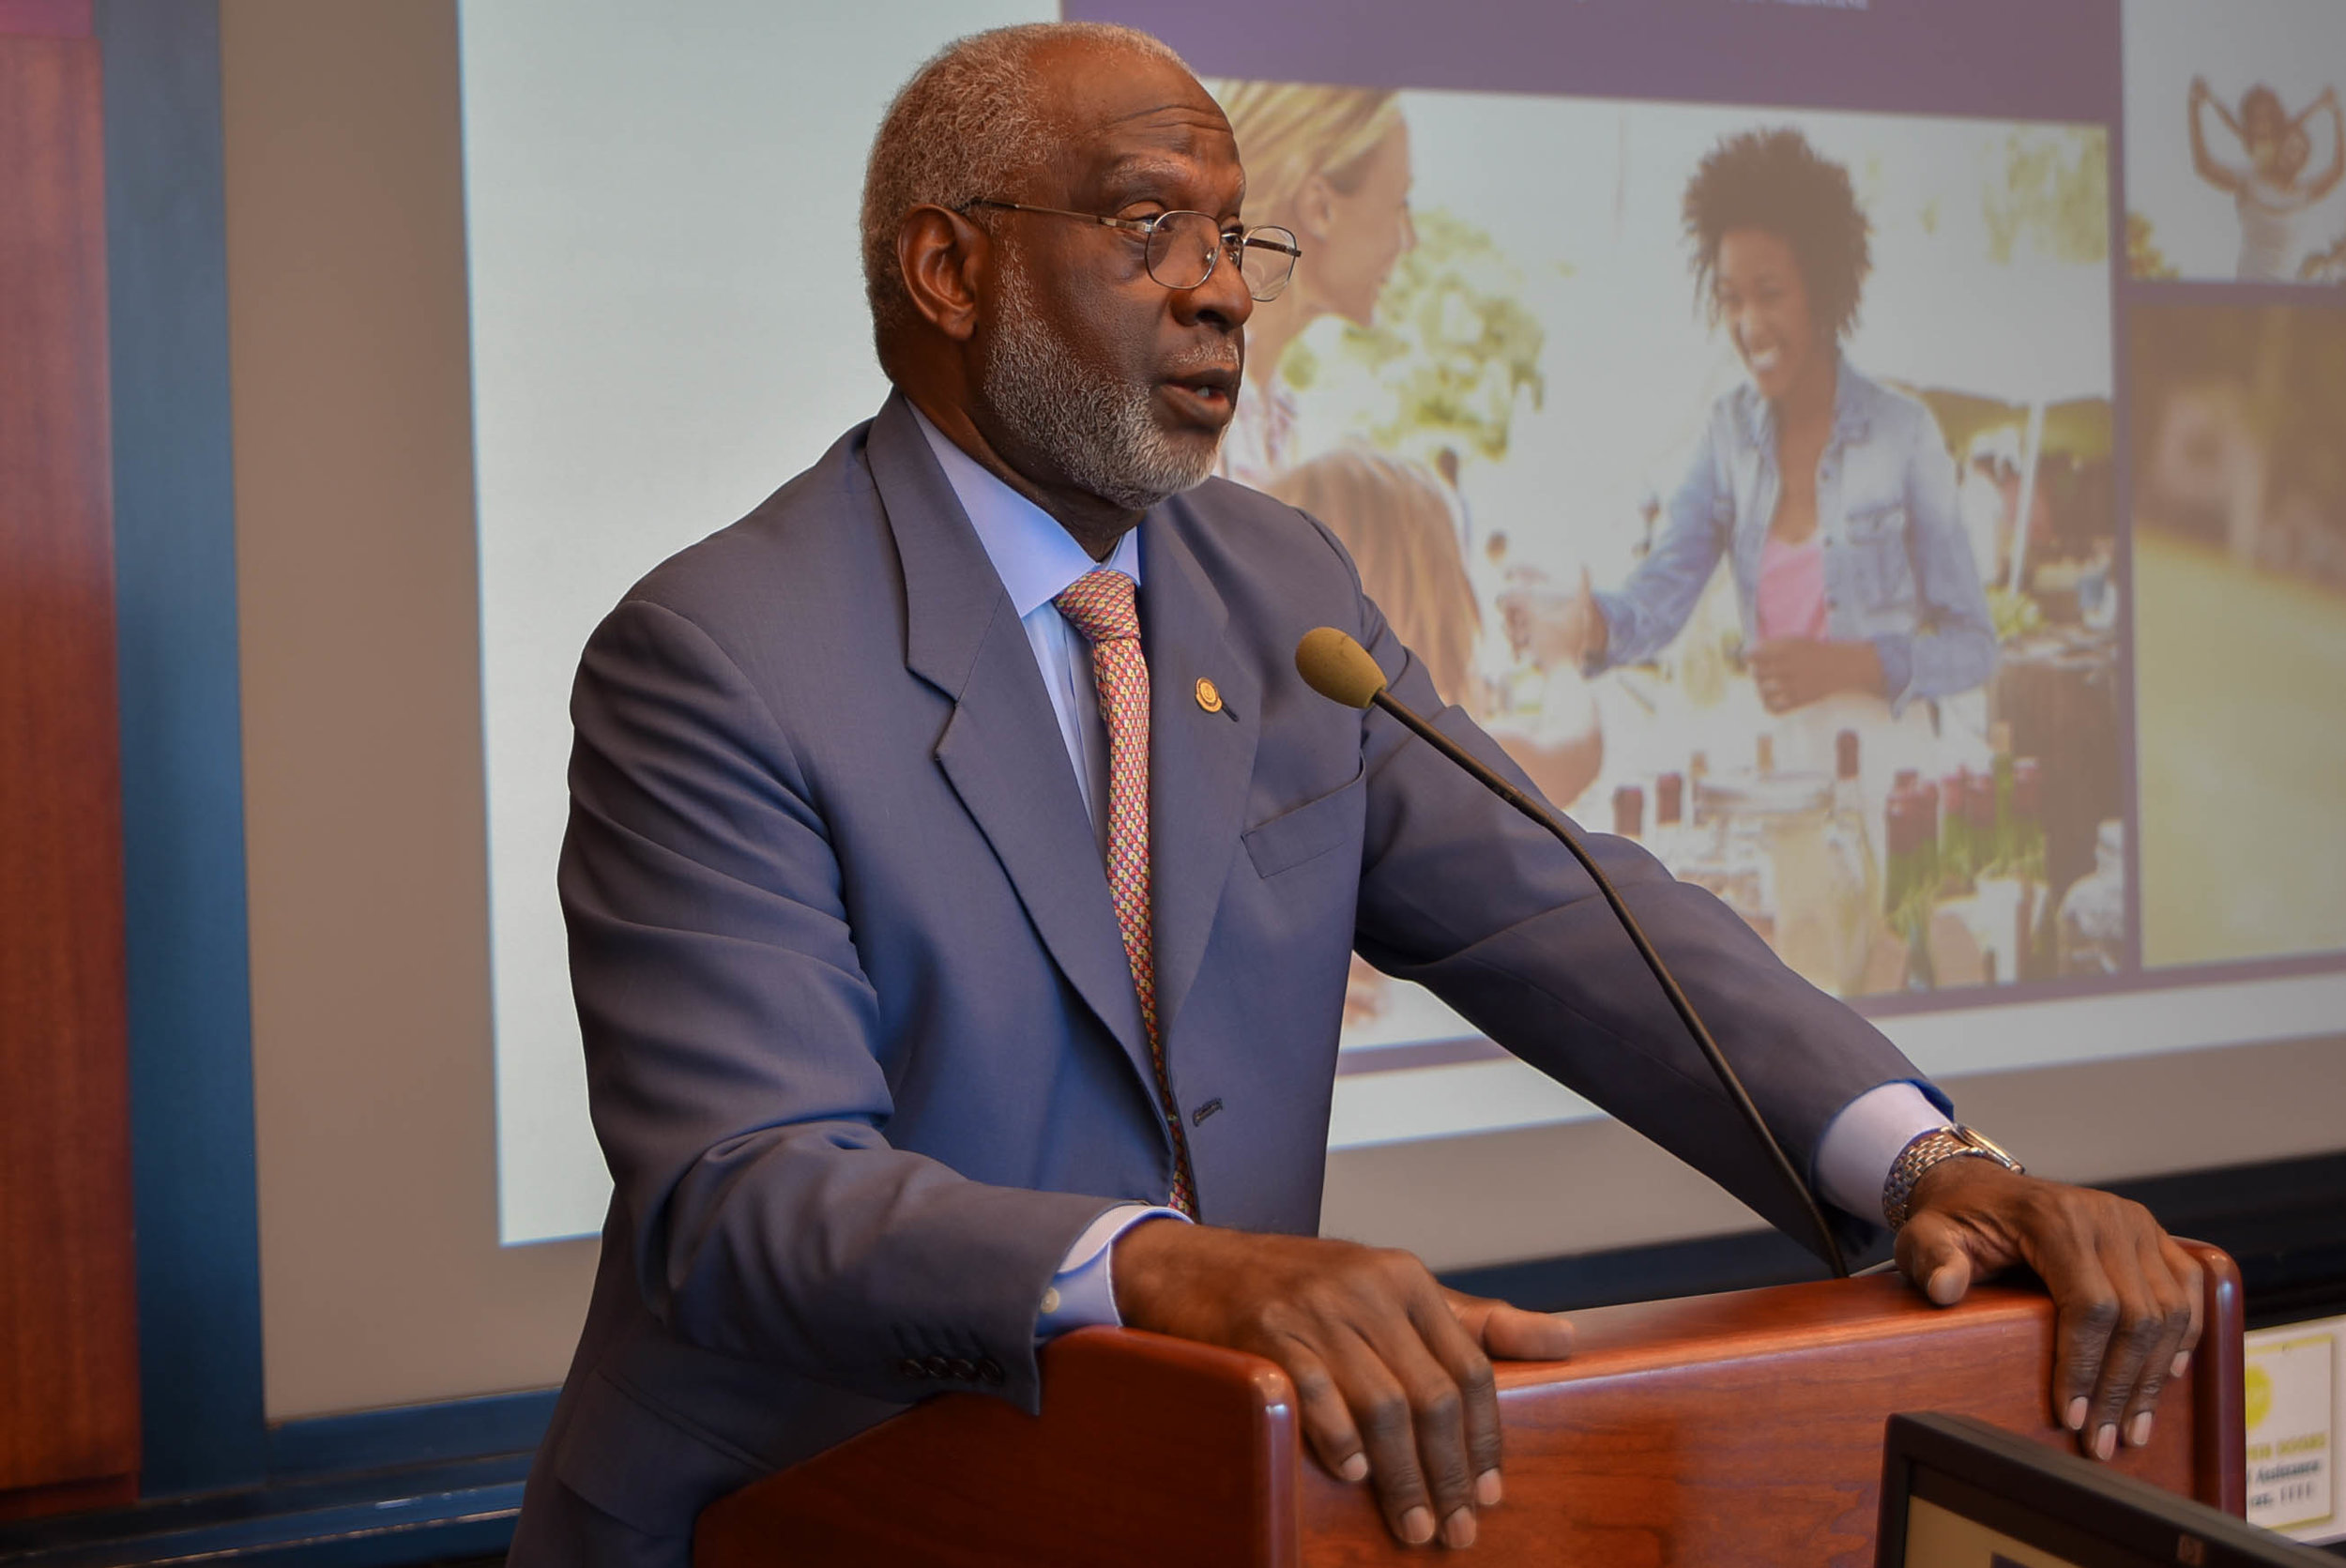 David Satcher, MD, Founding Director and Senior Adviser Satcher Health Leadership Institute, 16th Surgeon General of The United States